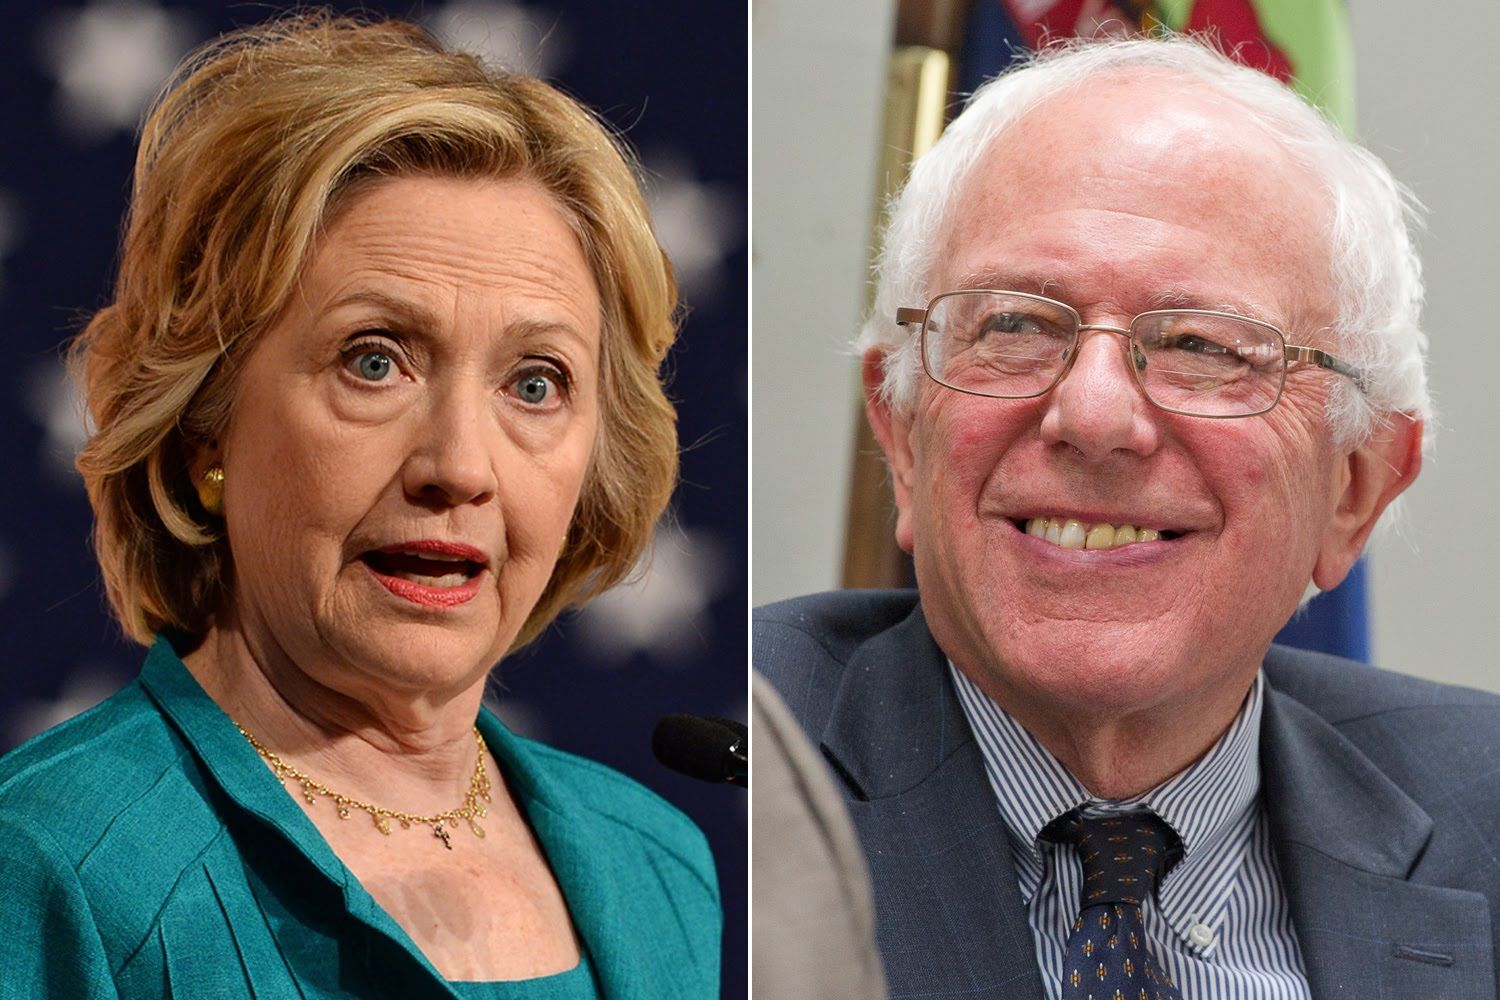 Bernie Sanders Surges Ahead of Hillary in NH Poll